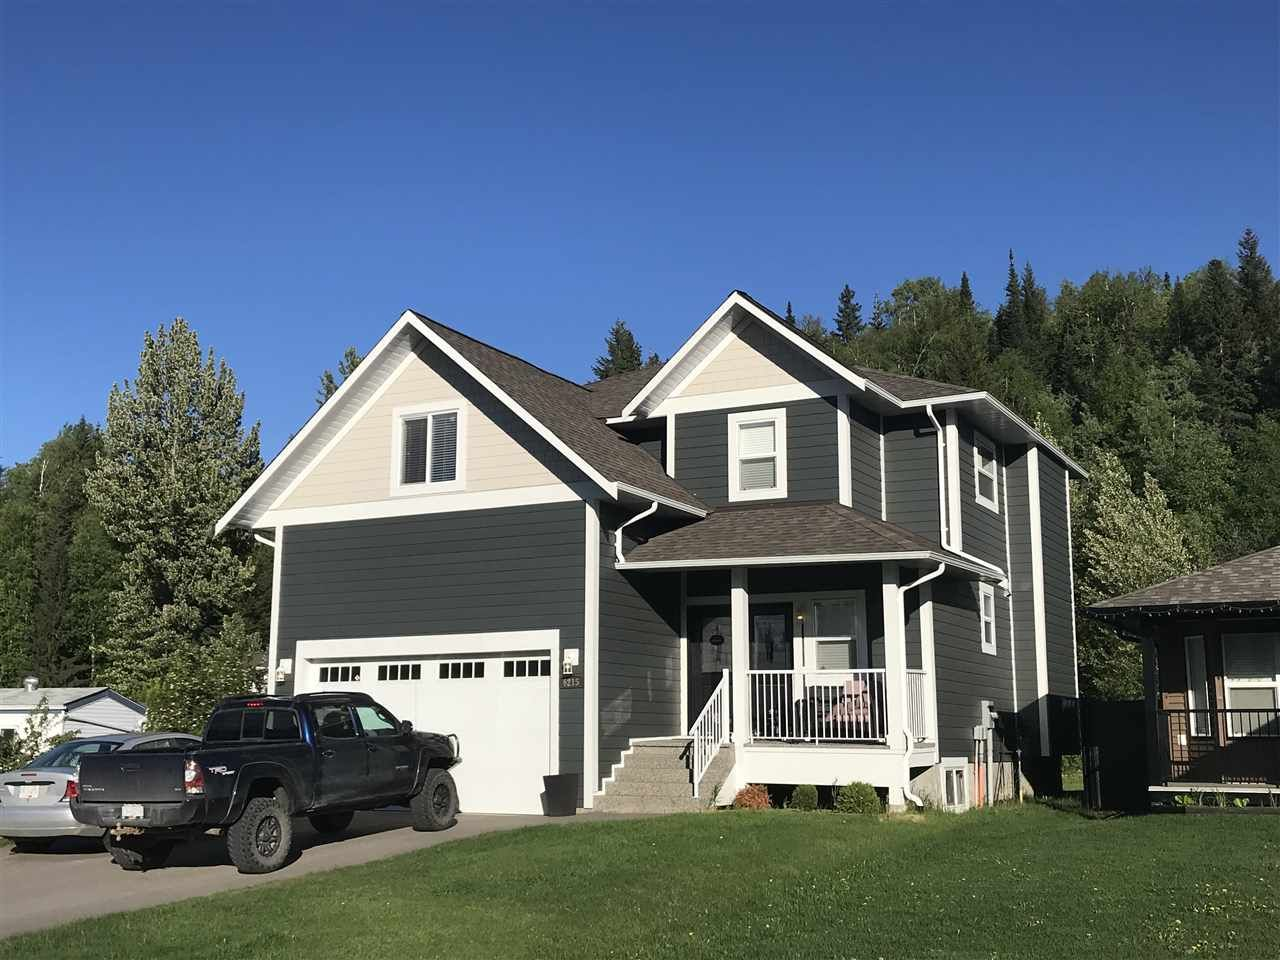 """Main Photo: 6215 W MONTEREY Road in Prince George: Valleyview House for sale in """"VALLEYVIEW"""" (PG City North (Zone 73))  : MLS®# R2279458"""